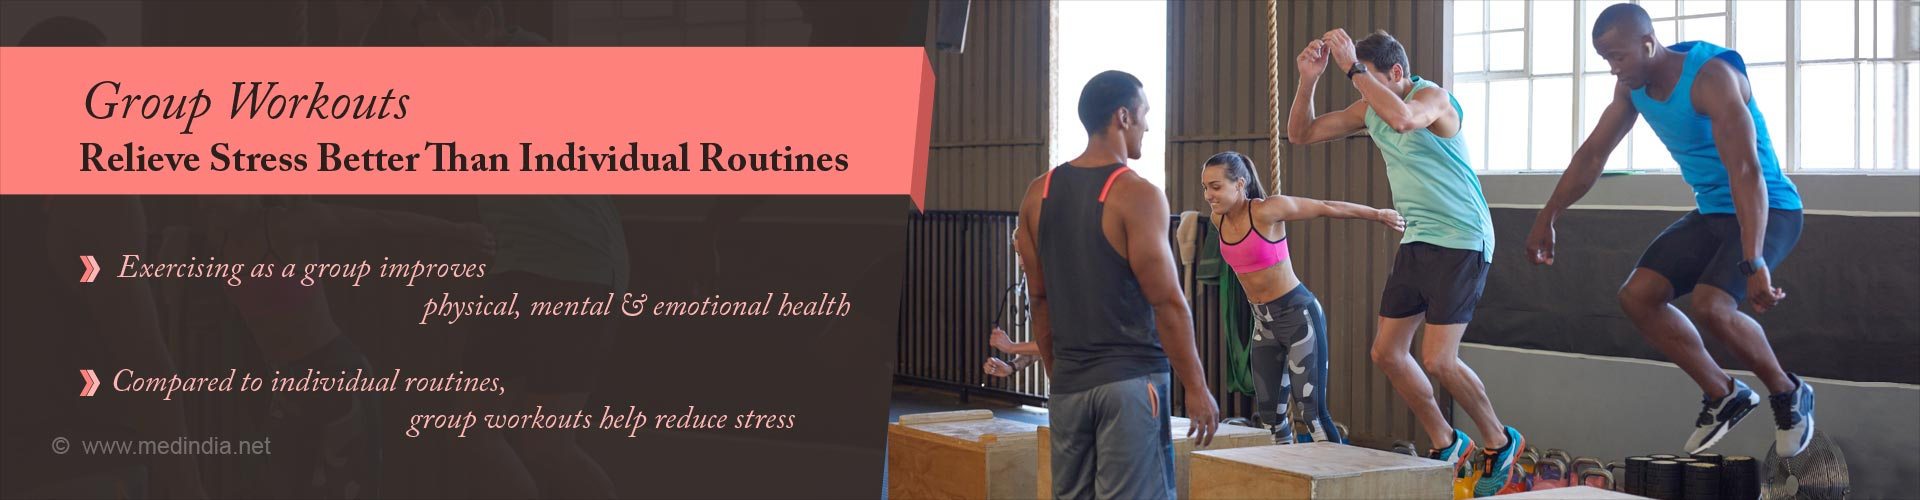 group workouts relieve stress better than individual routines